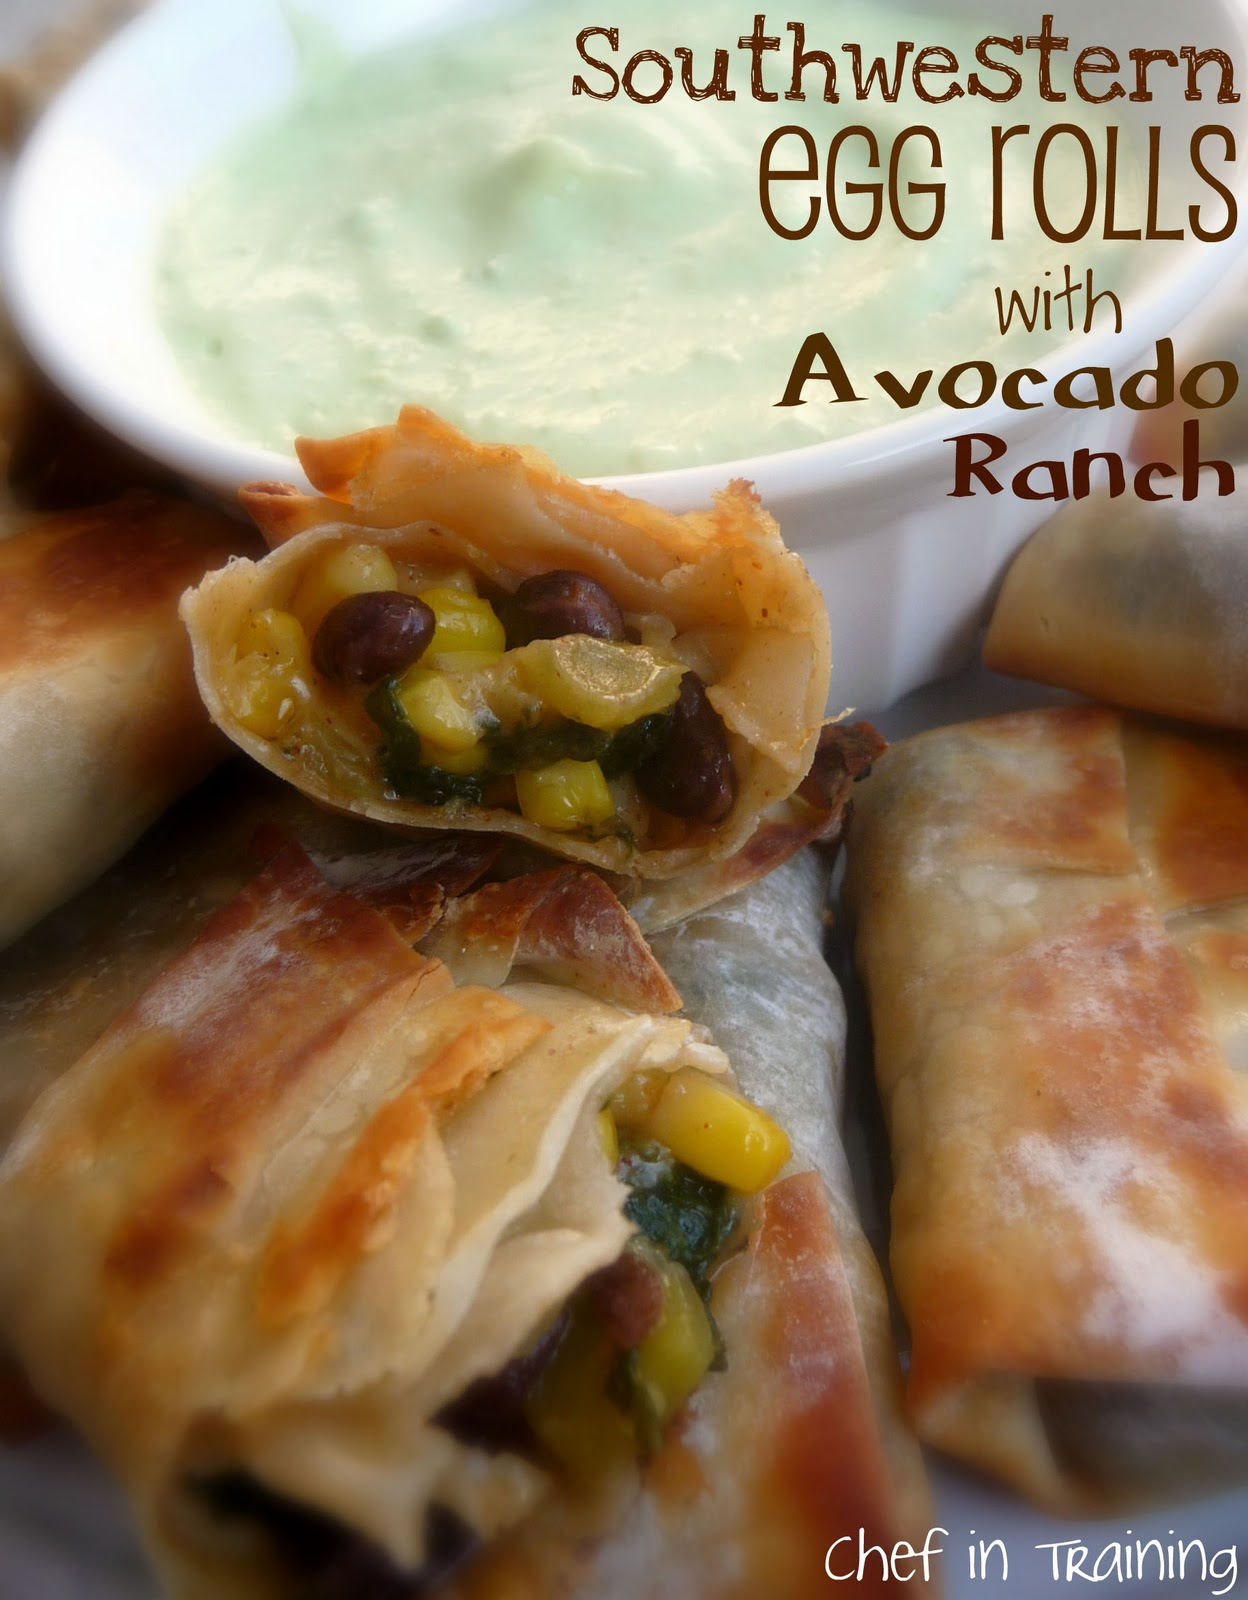 Southwestern Egg Rolls with Avocado Ranch - Chef in Training